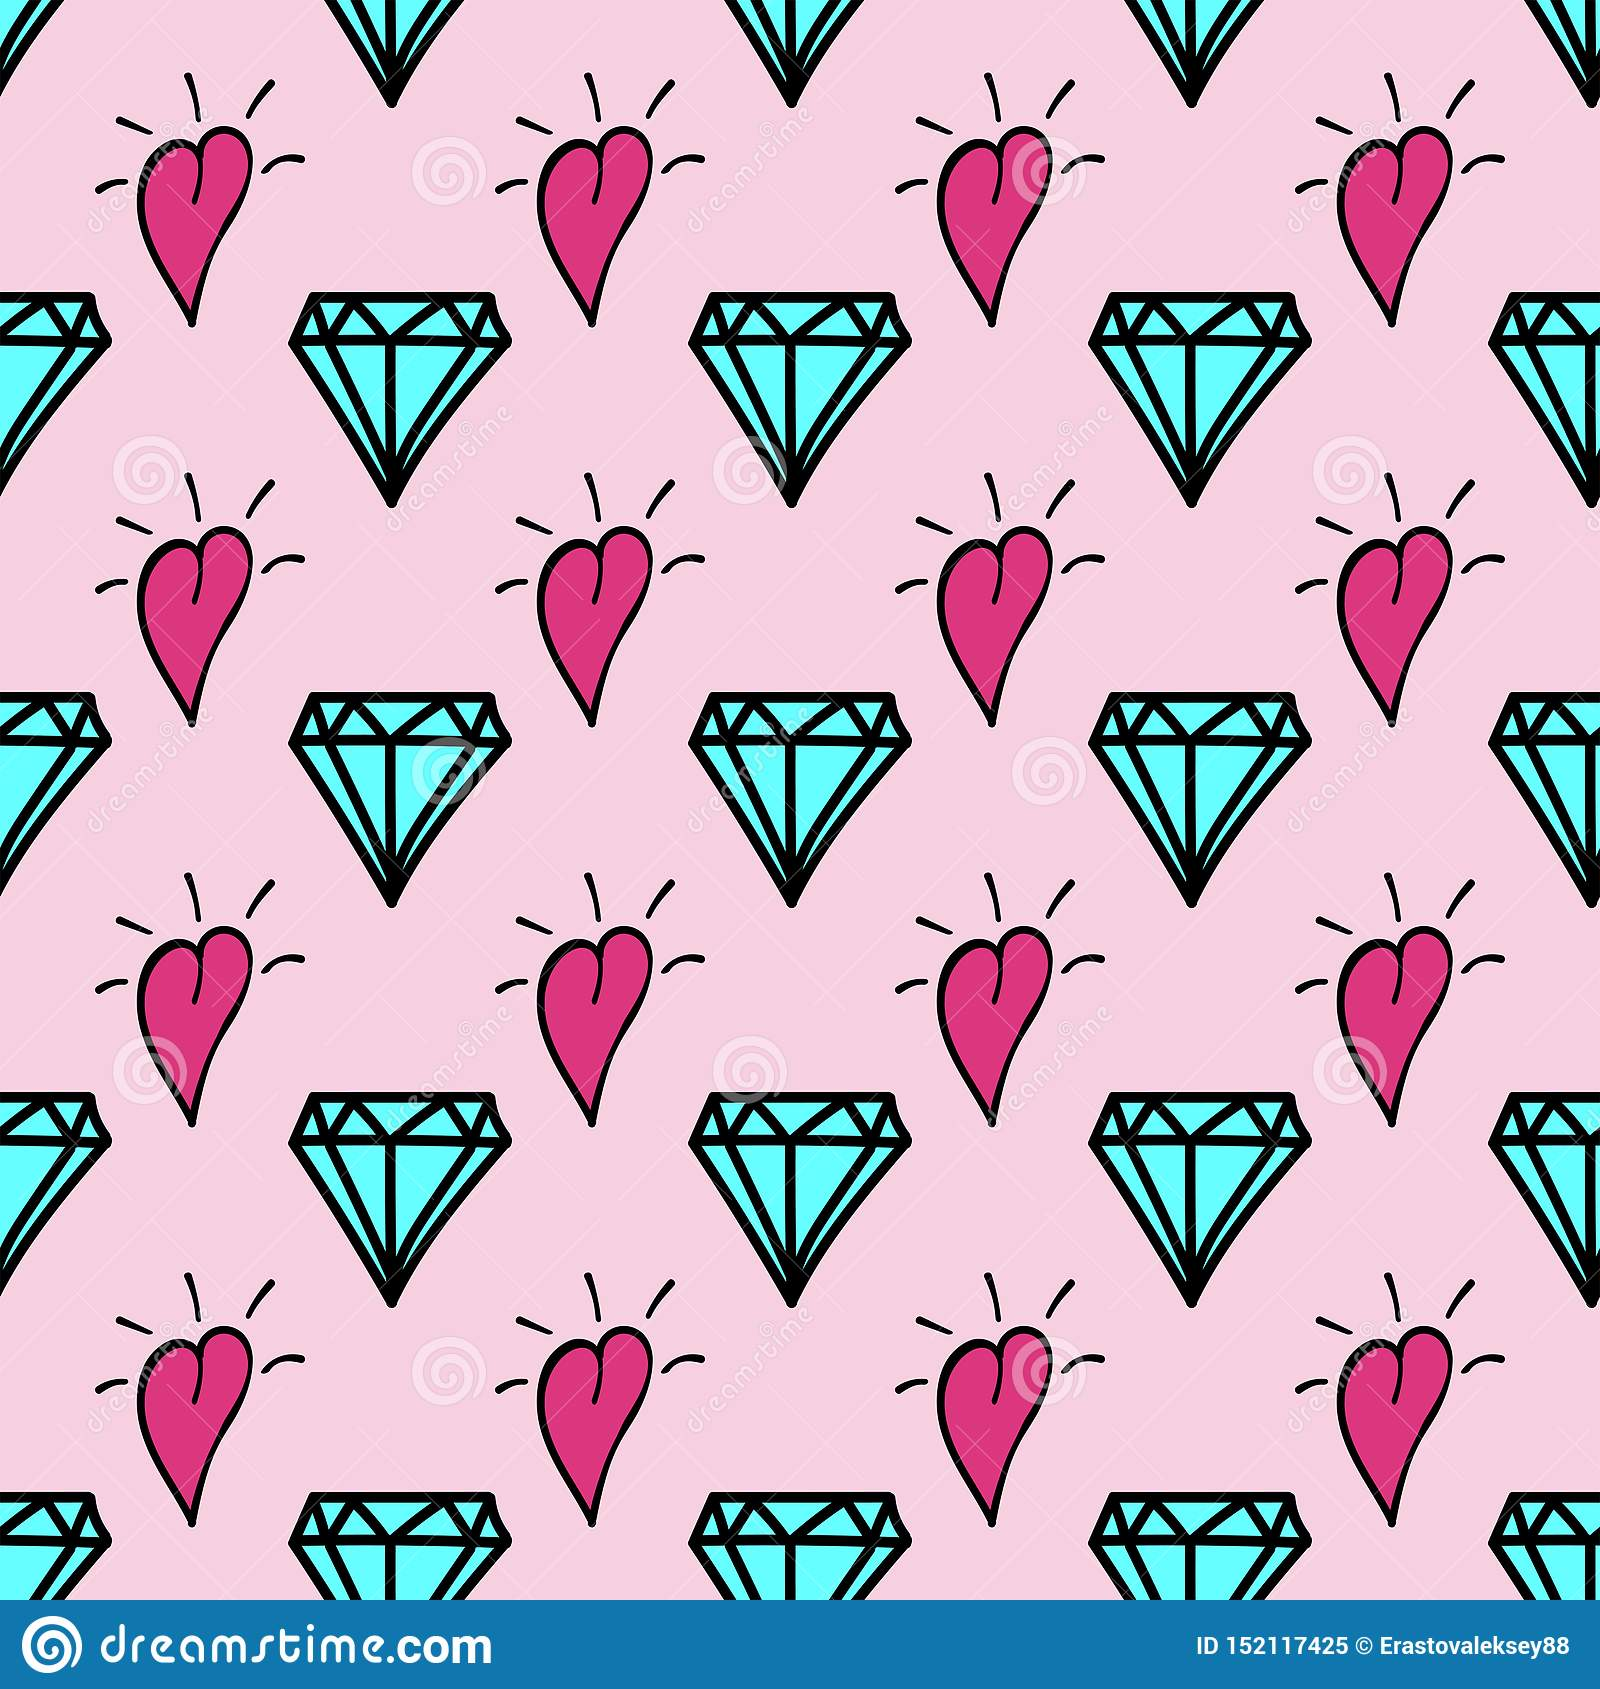 Stylish feminine seamless pattern drawn by hand. Cute print with repeating diamonds and hearts. Doodle.